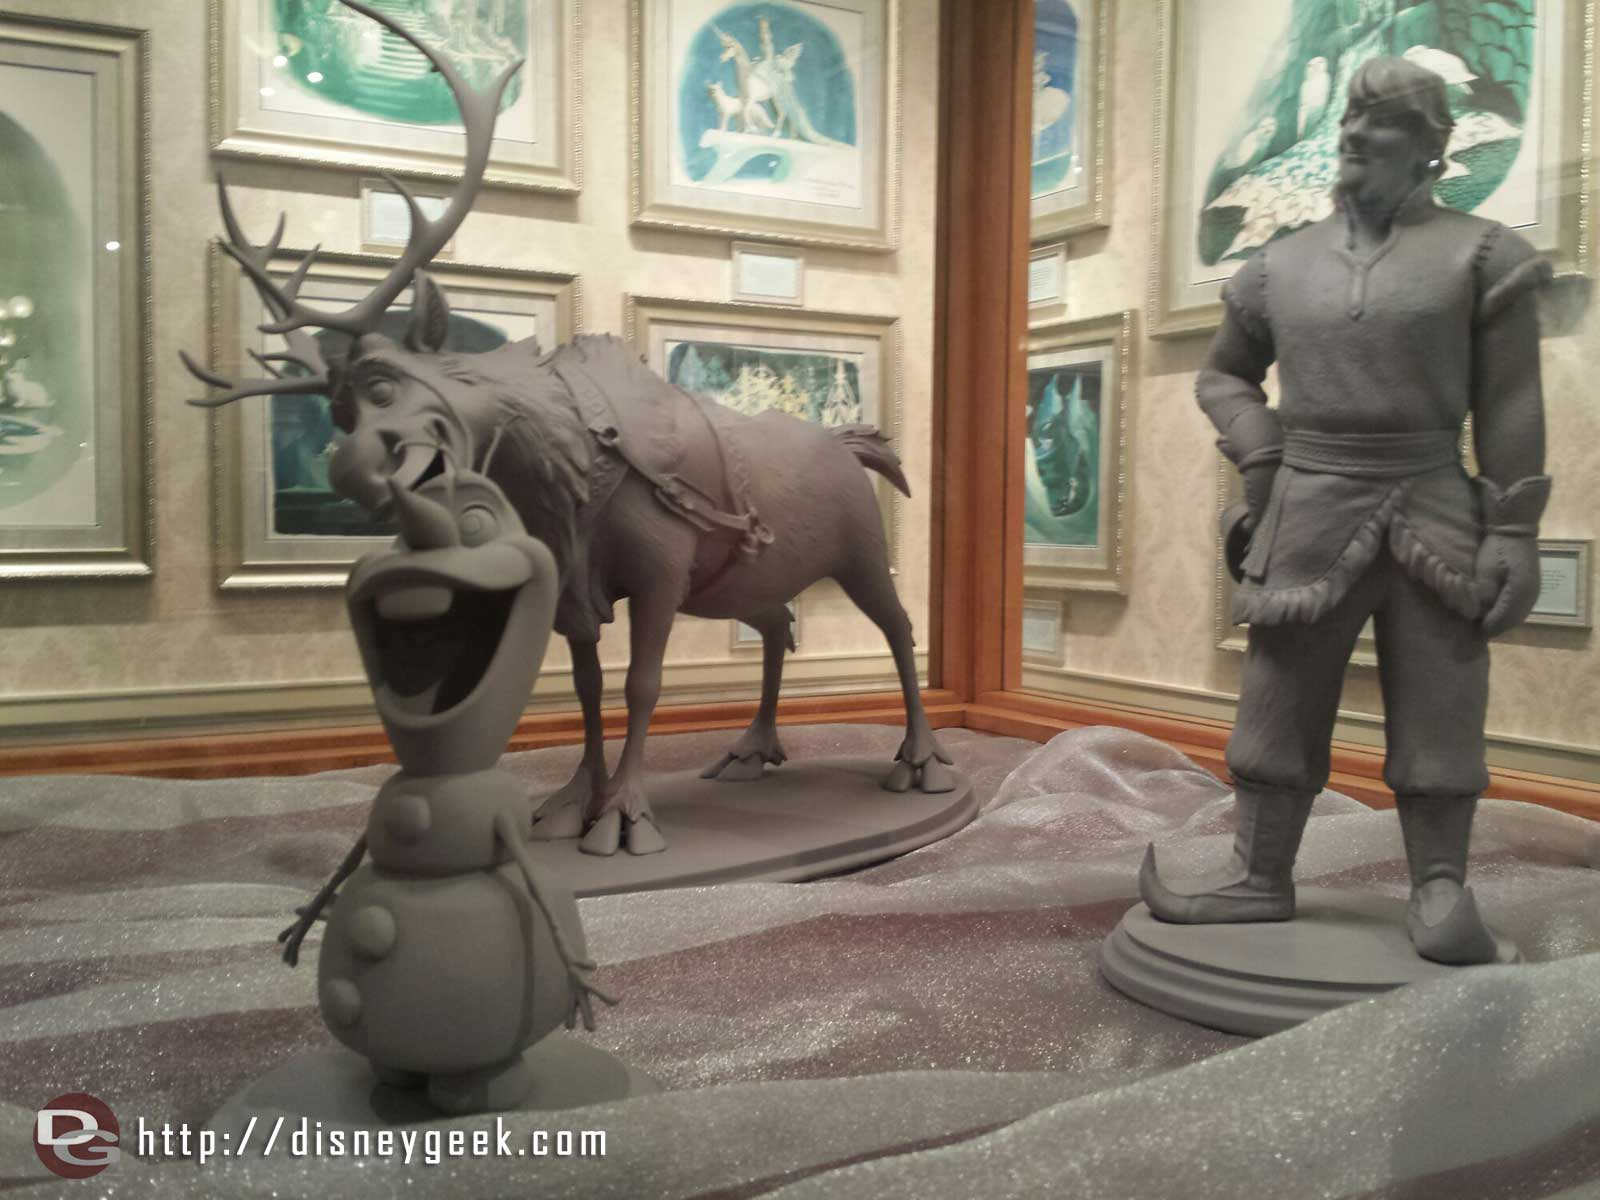 #Frozen character models in the Disney Gallery exhibit Snow Queens Art of Ice